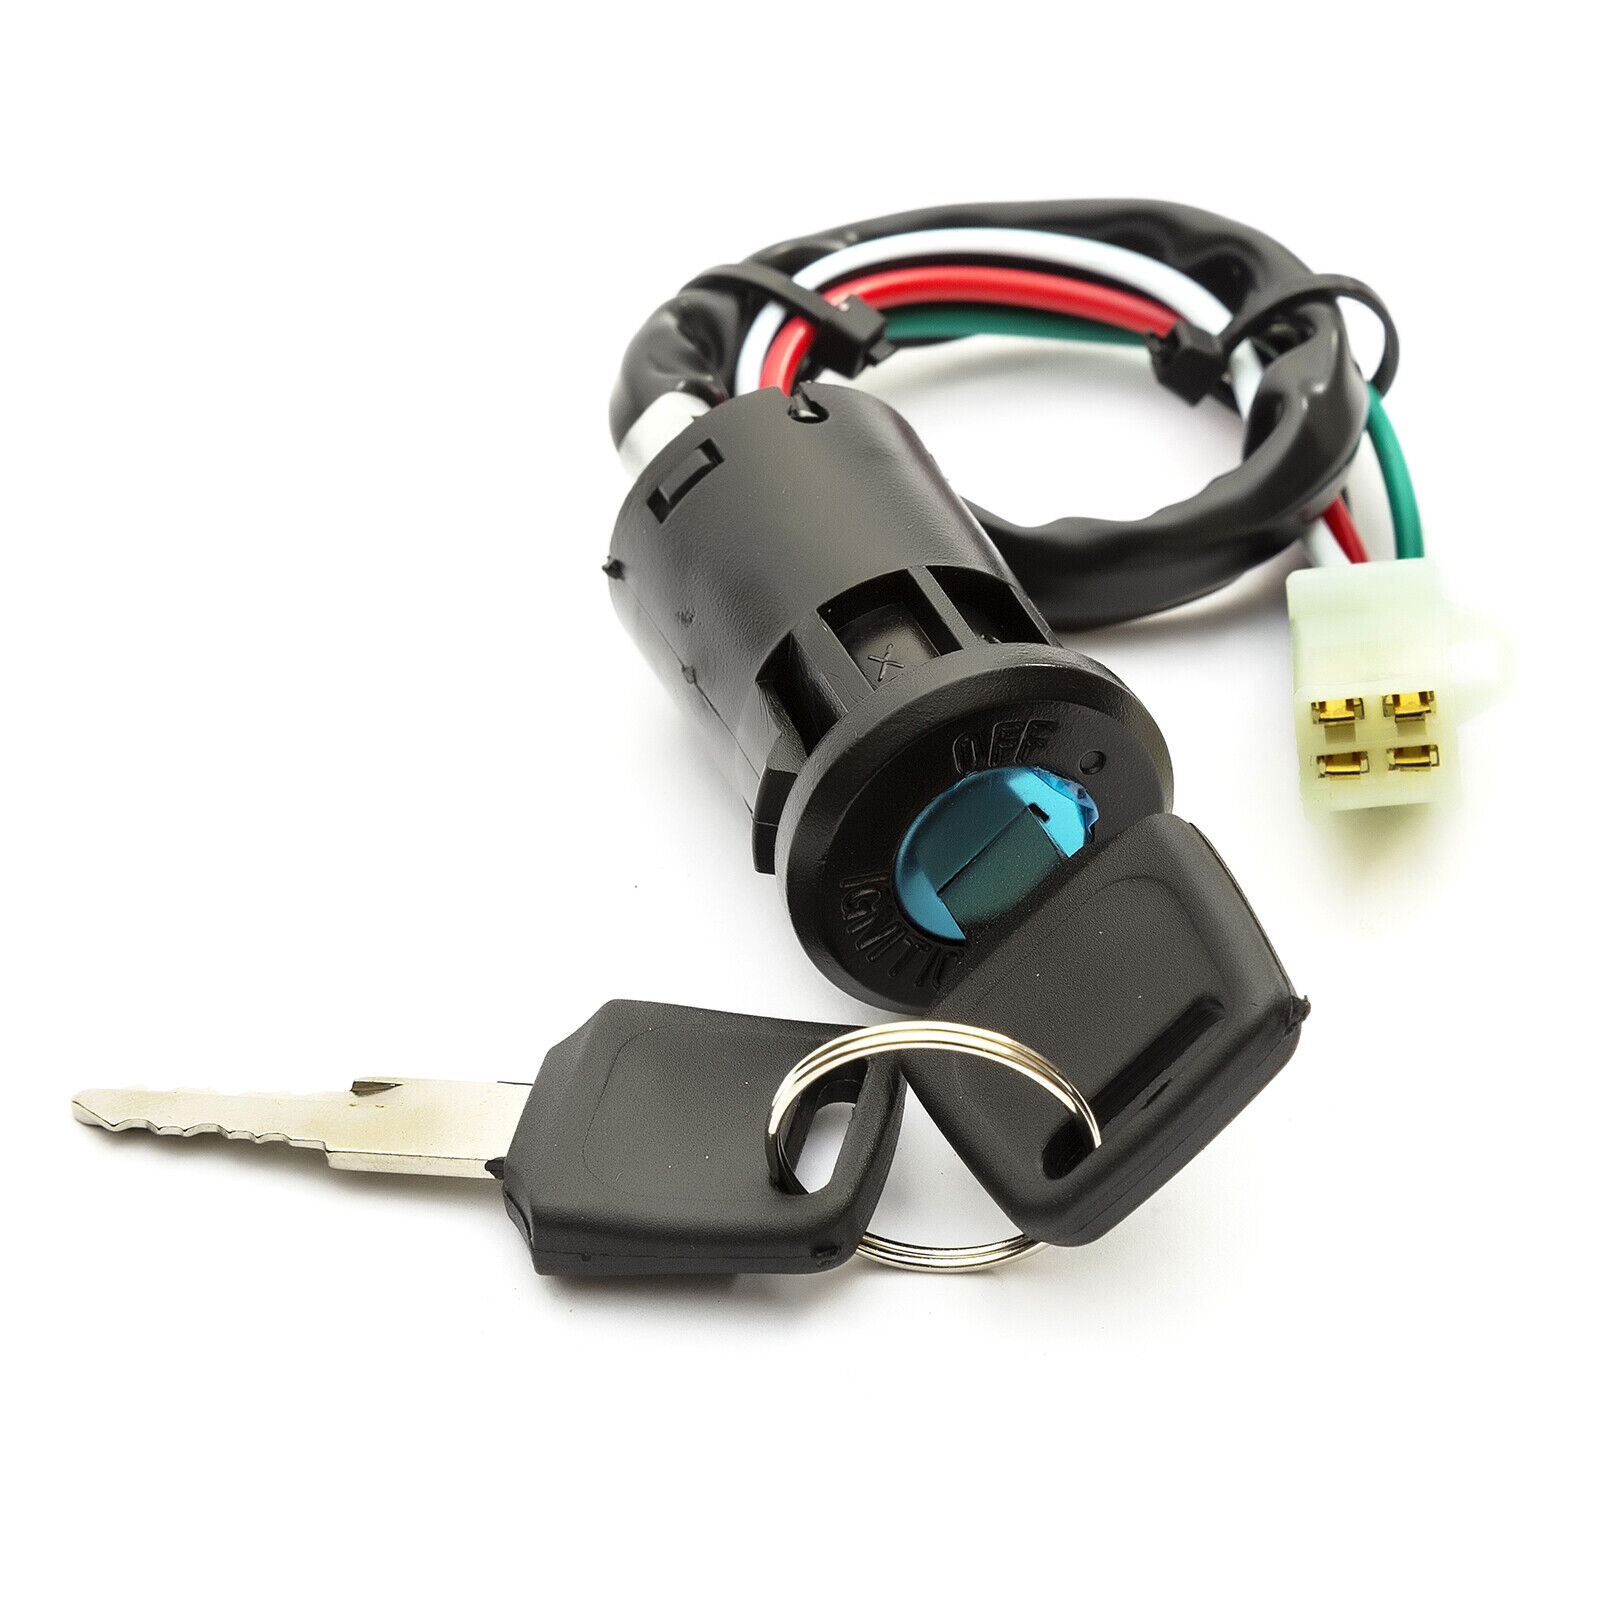 110cc 125cc 140cc Pit Dirt Quad Bike Key Stop Switch Ignition Kill 4 Wiring Loom Harness For 50cc 125 140 150 160cc Pin On Off 1 Of 6free Shipping